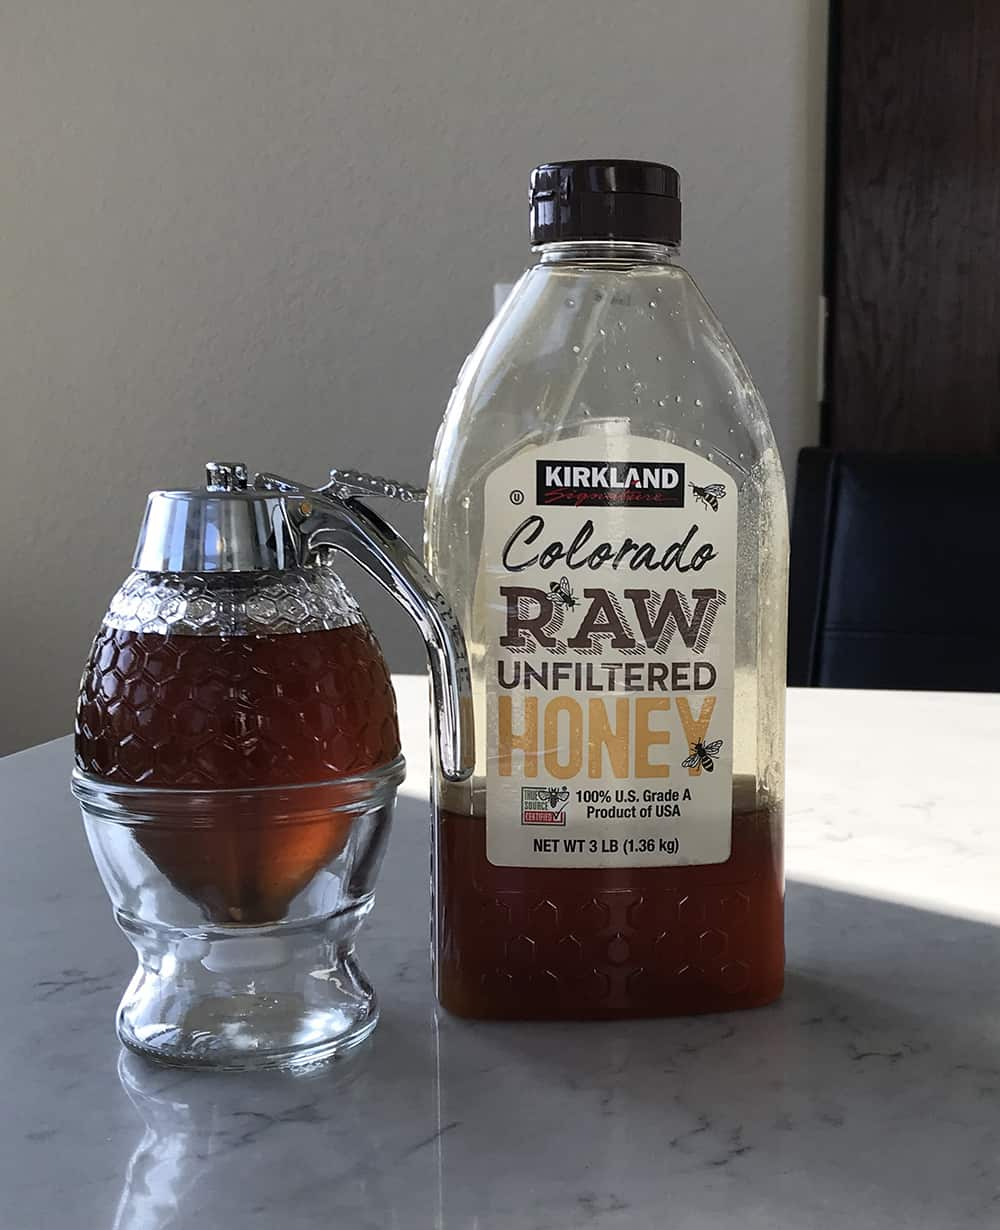 Crystallized honey liquefied using the sous vide method